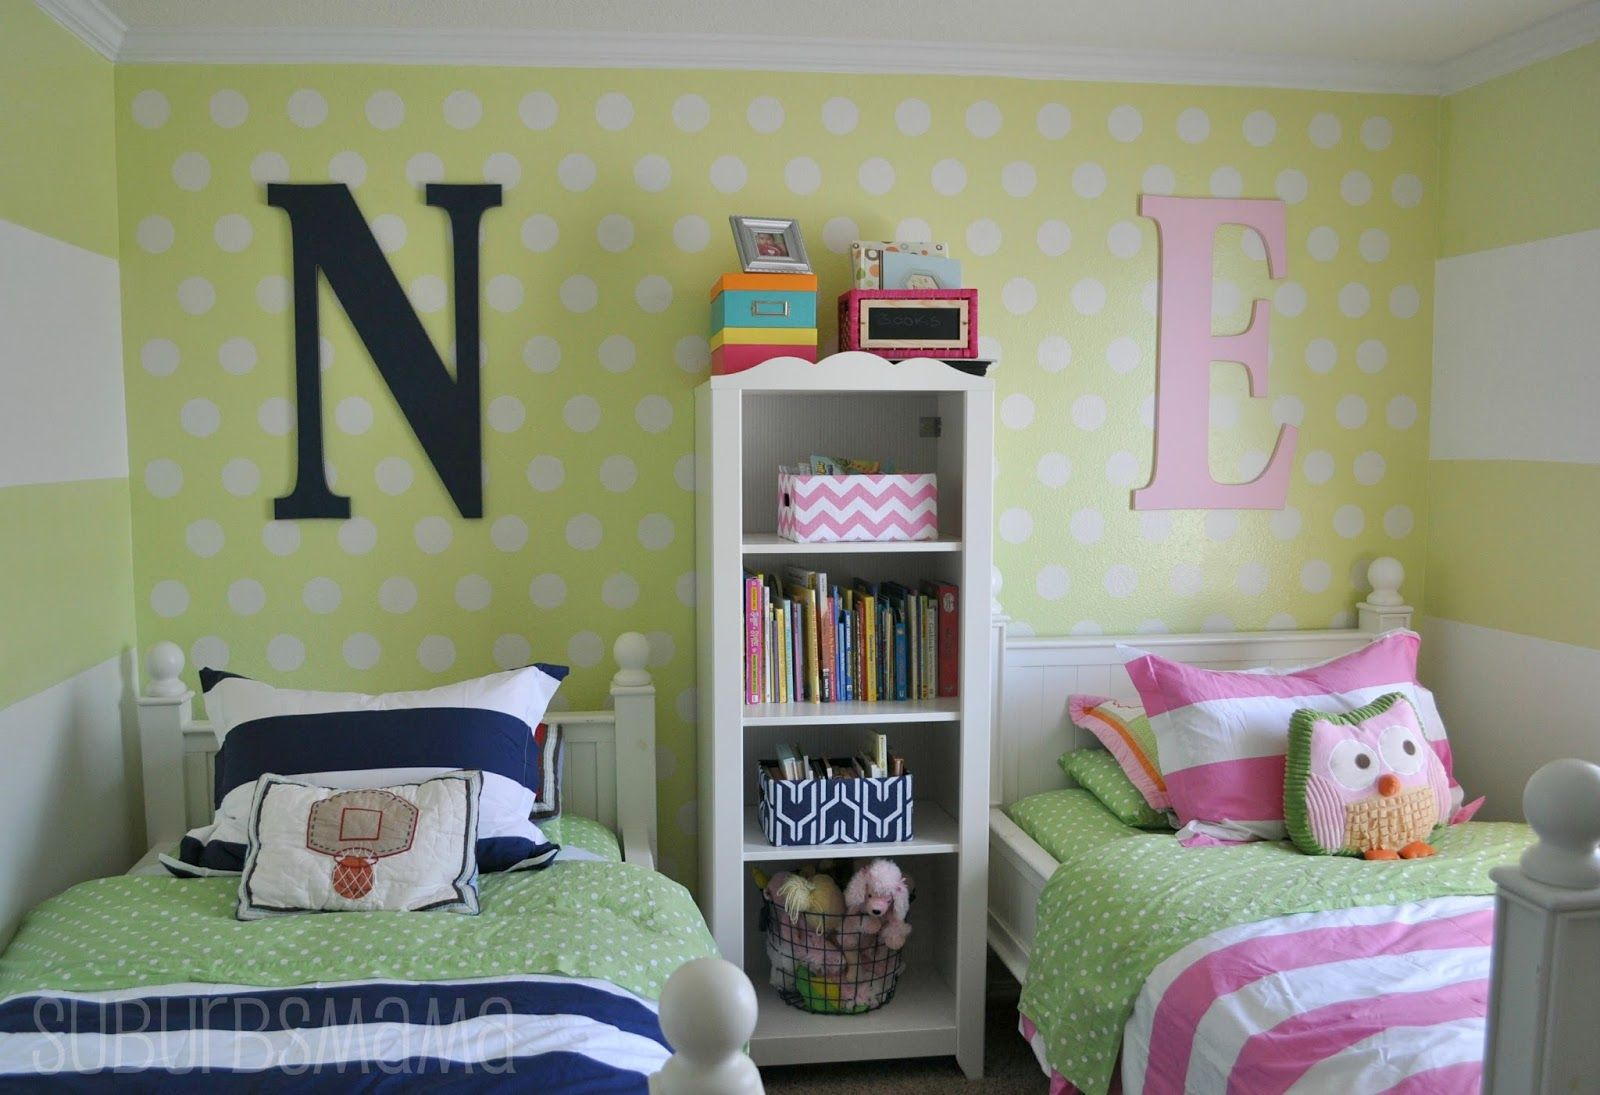 Shared boys bedroom designs - 16 Gorgeous Boy Girl Room Ideas Beautiful Boy And Girl Shared Bedroom With Two Single Size Beds Navy And Pink Stripes Pillows Blankets Plus Basketball